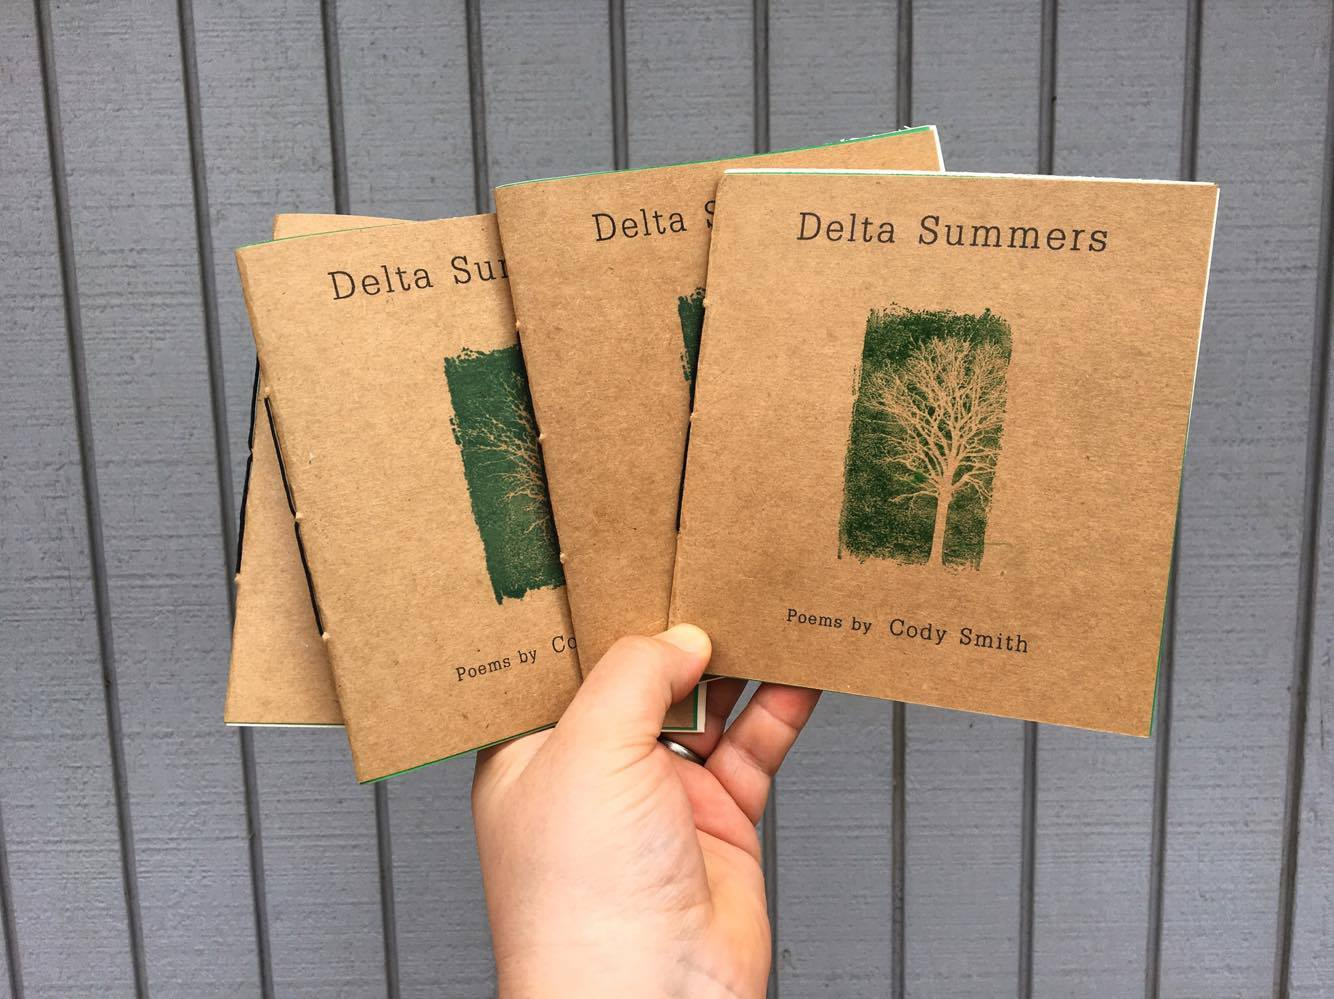 Delta Summers (Chapbook, Yellow Flag Press) - Read these poems out in the humidity and sun if you can. With sweat beads on the glass of your beverage and cicada song in the trees. But if you can't, don't worry, these poems will transport you there soon enough. Cody Smith is writing the next generation's literary Louisiana, and I know of no poet better suited to the task. His very identity speaks in and for the exquisite vernacular of the place. Through the saturated physicality of his vision, and through the longing, sorrow, and love in his recollection and his regard, Smith evokes, inhabits and offers to us his home's natural, cultural and, yes, spiritual character. —Jonathan Johnson